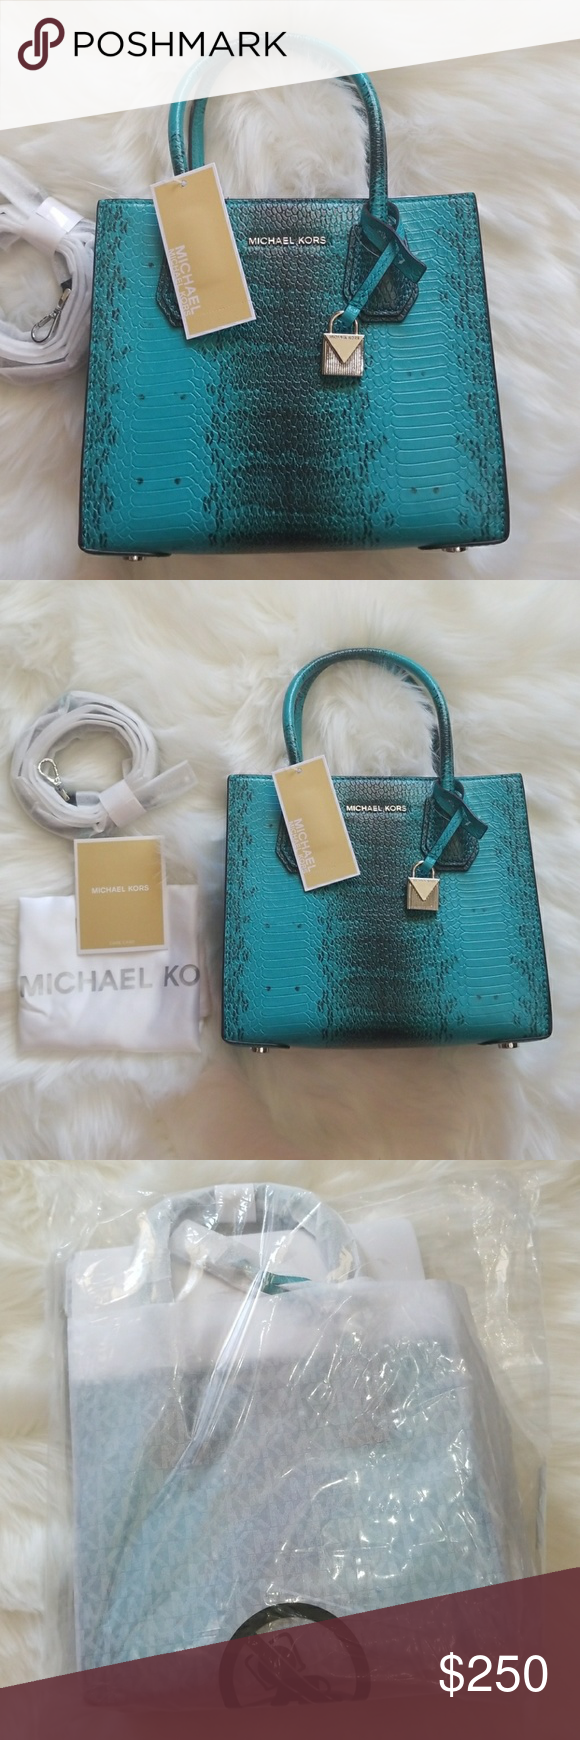 82786dbdc247 NWT Michael Kors Tile Blue Teal Mercer Crossbody AUTHENTIC Medium